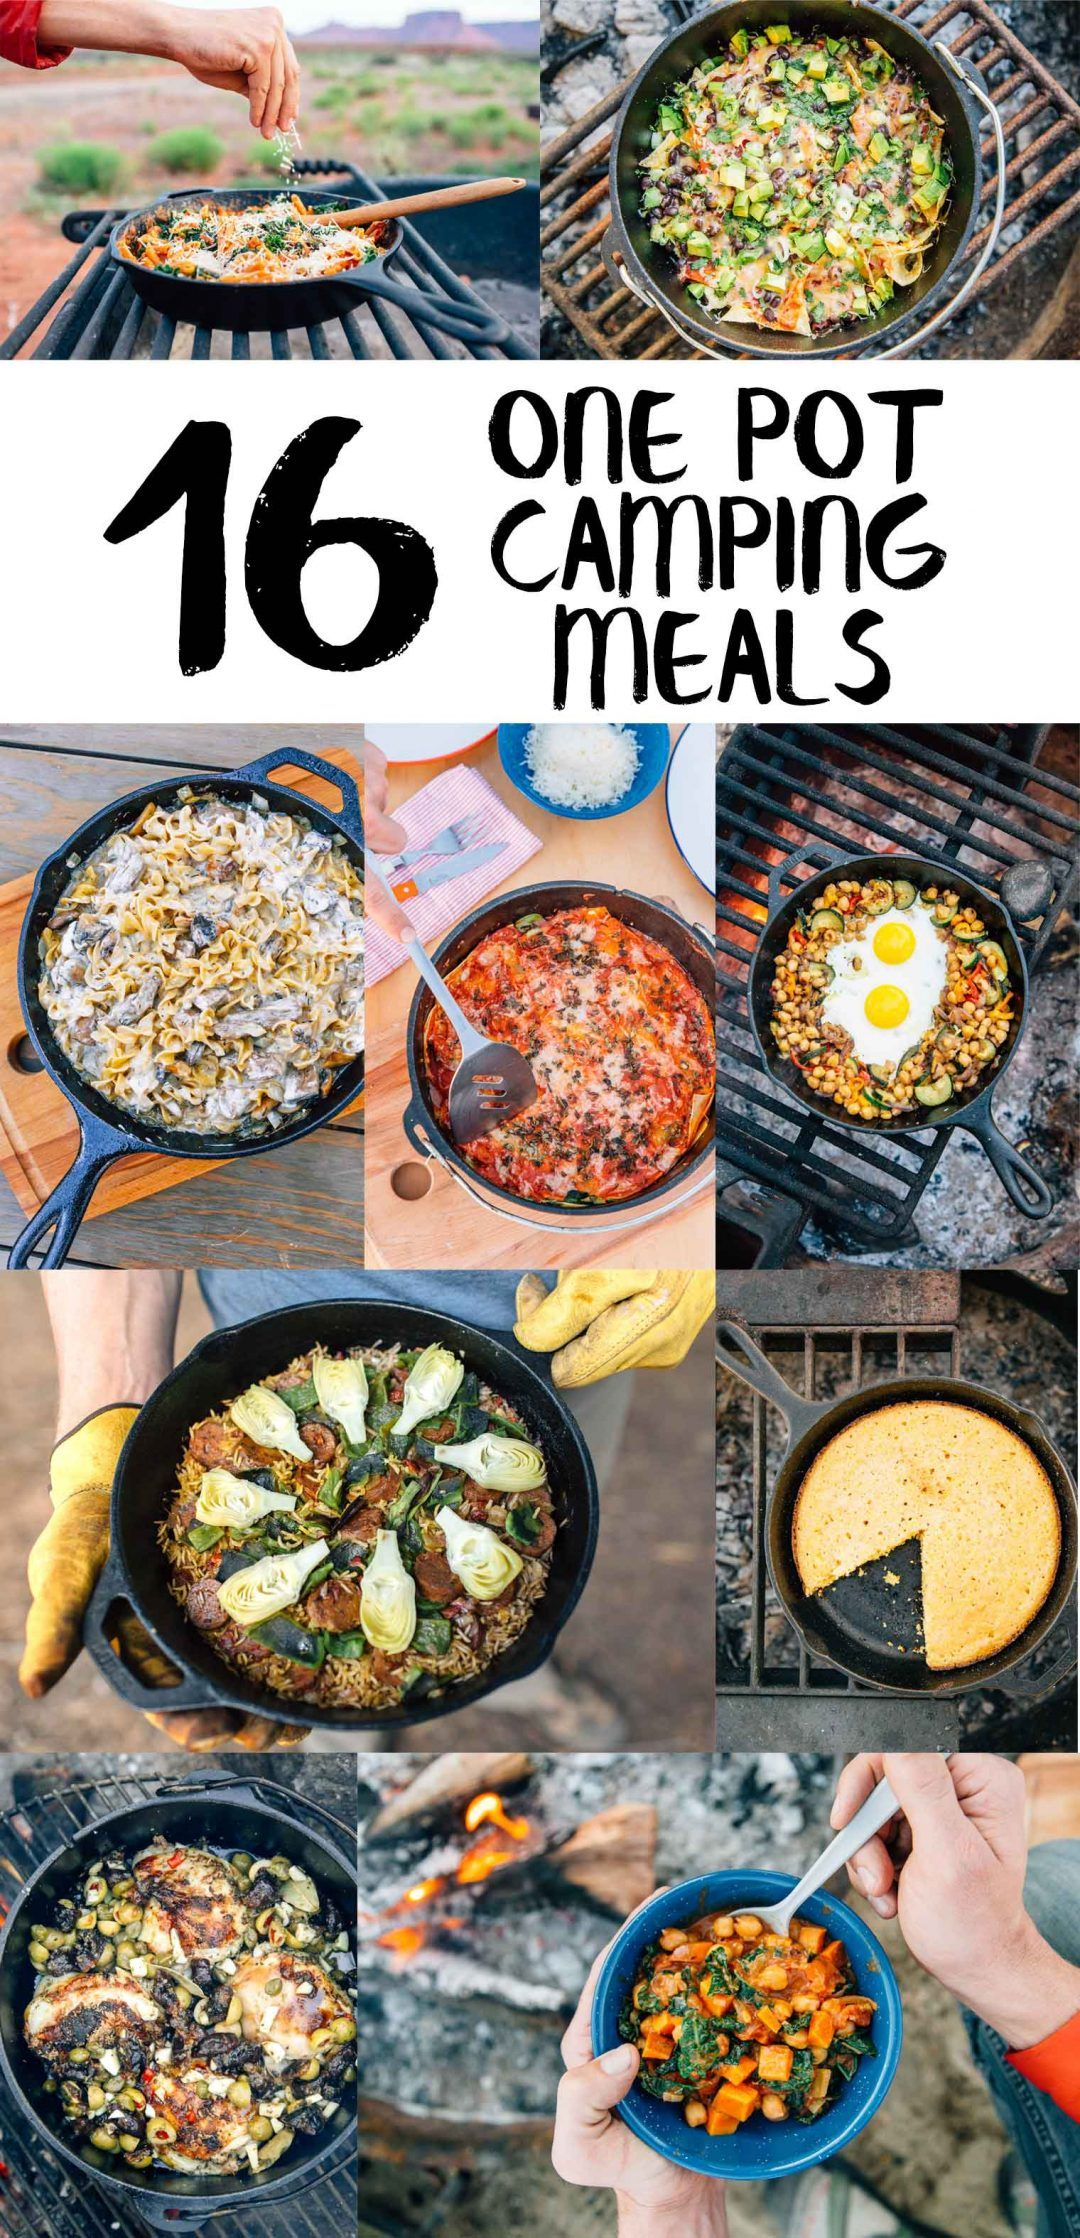 16 One Pot Camping Meals | Fresh Off the Grid